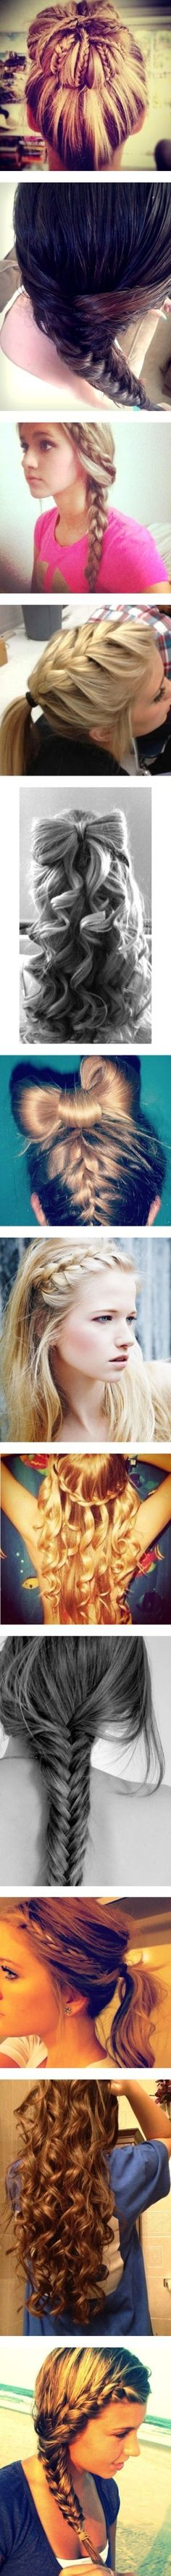 braids french braids, inspiration, long hair, curls, bows, braided hairstyles, hair style, braid hair, beauty